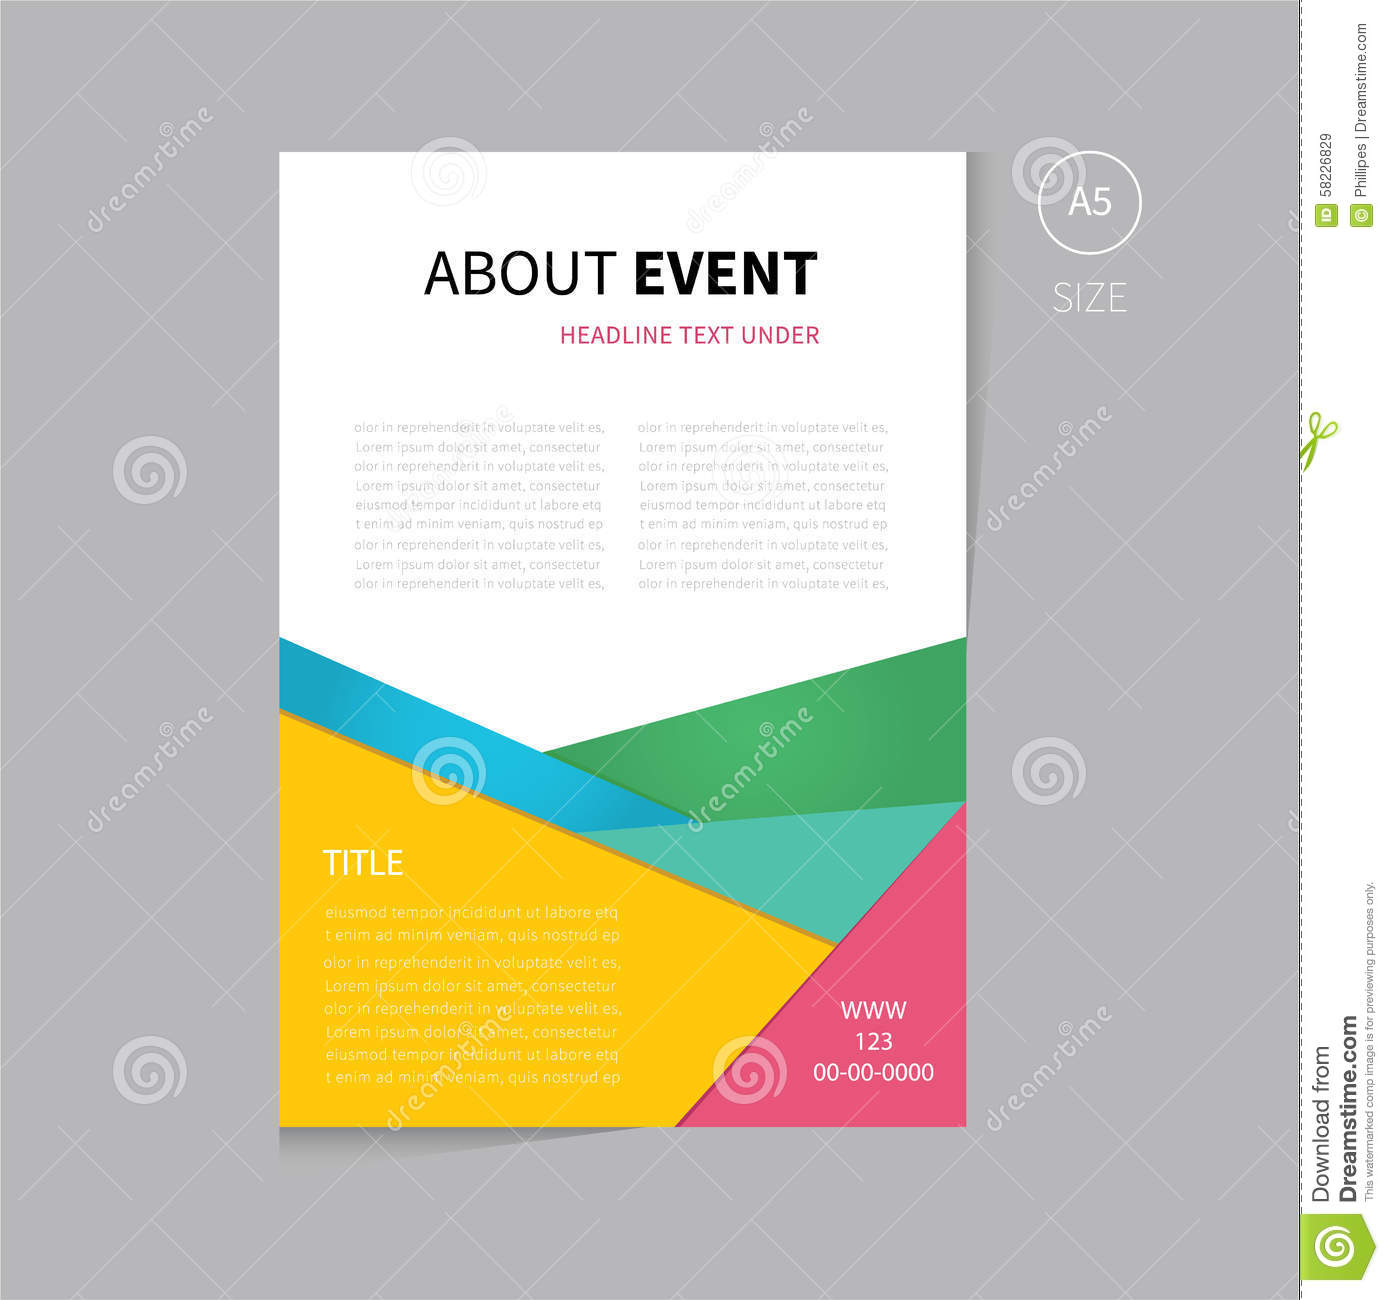 brochure template free - vector brochure flyer template design a5 size stock vector